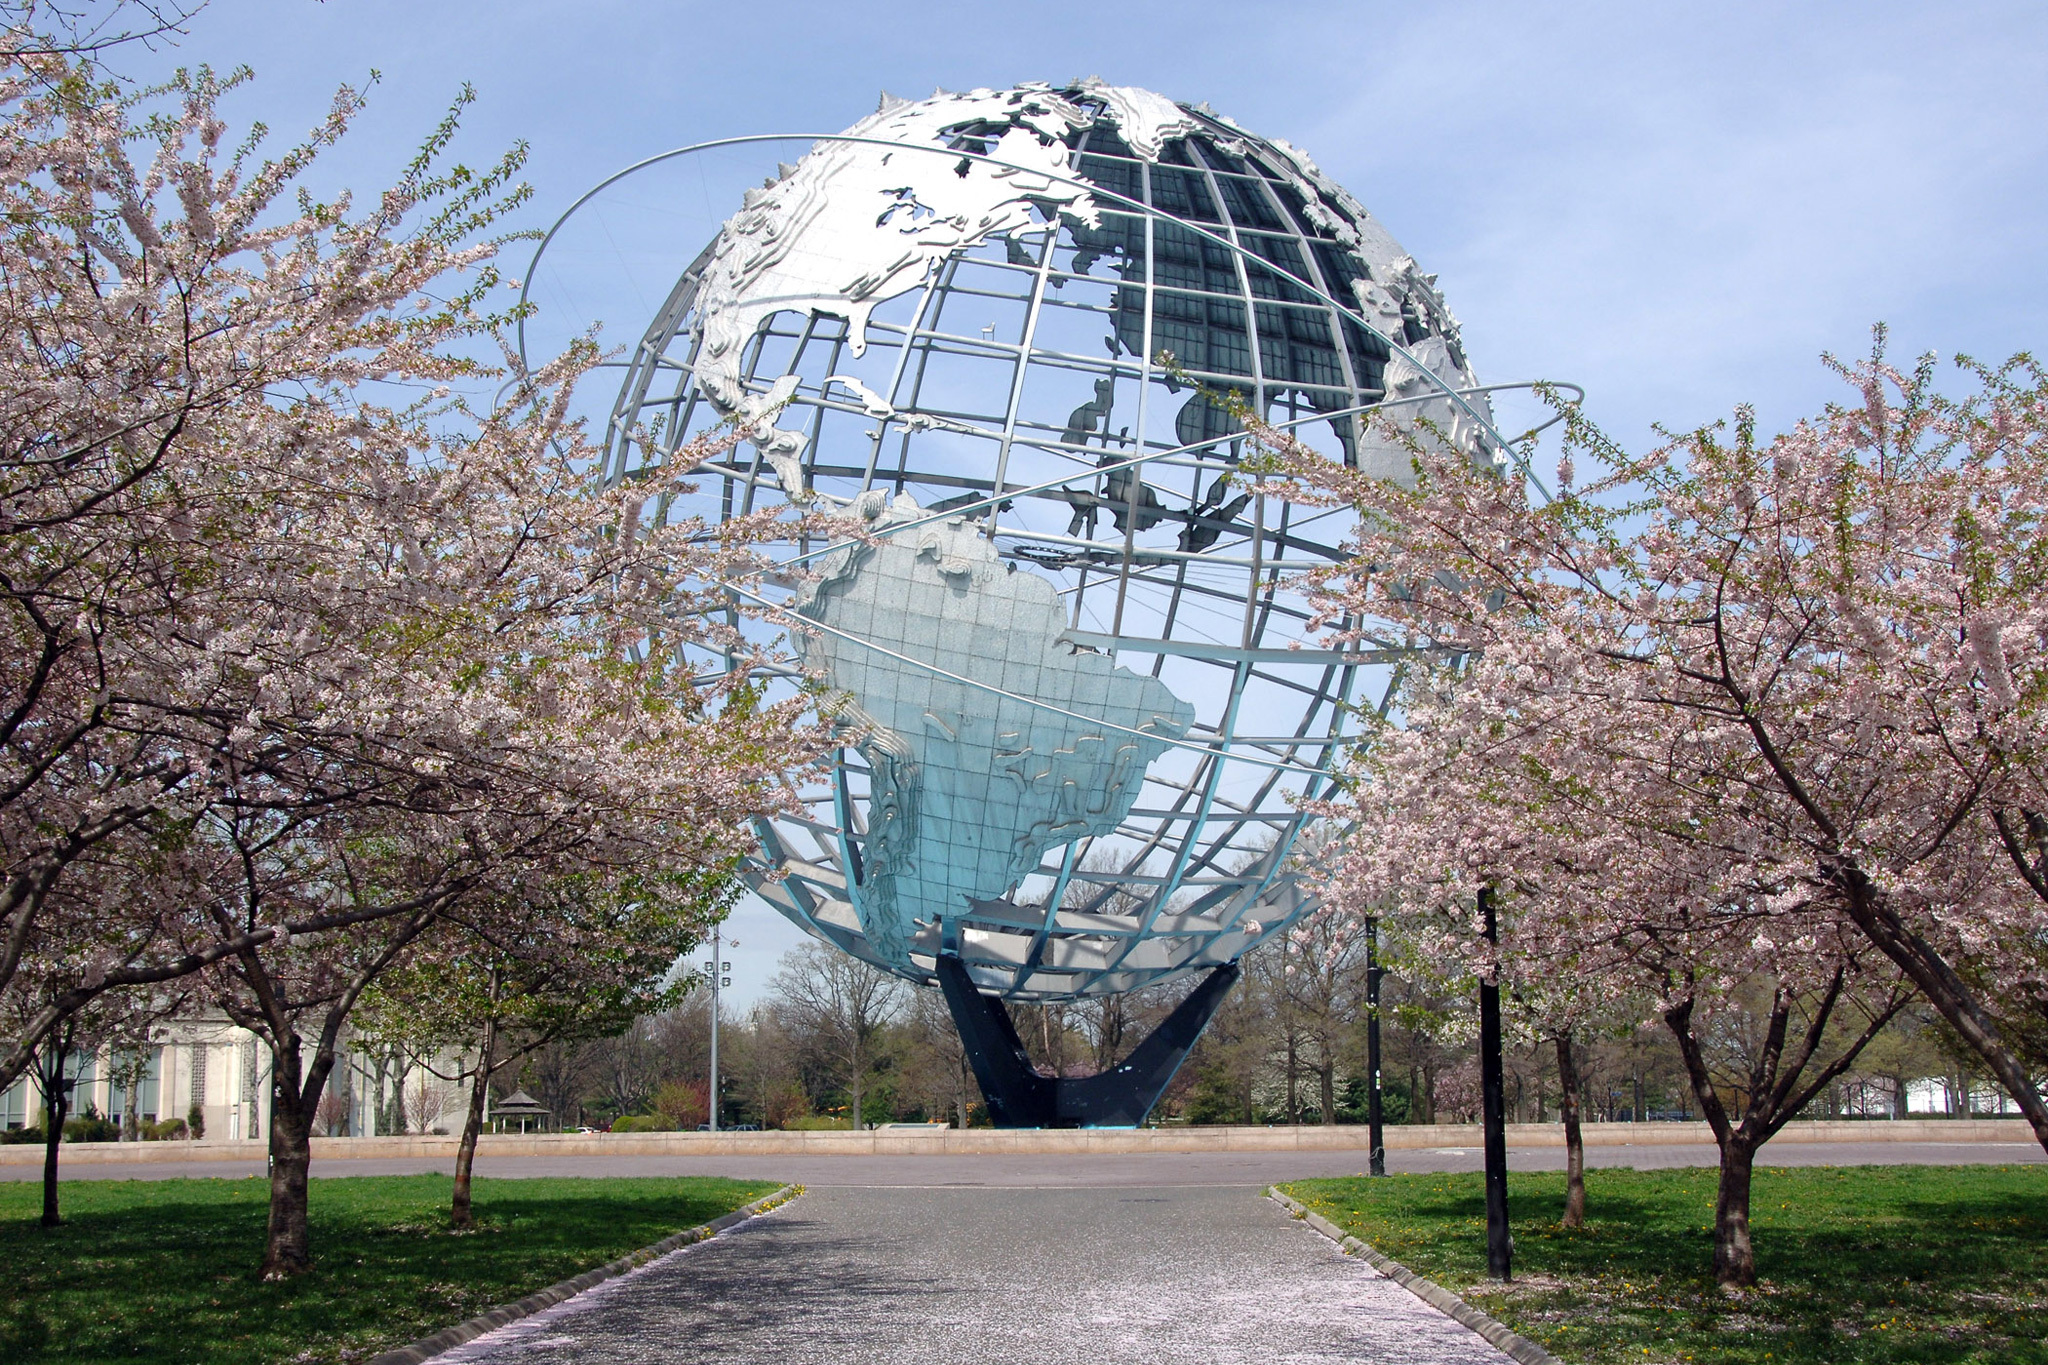 Flushing meadows corona park queens ny attractions in for Attractions in nyc for couples